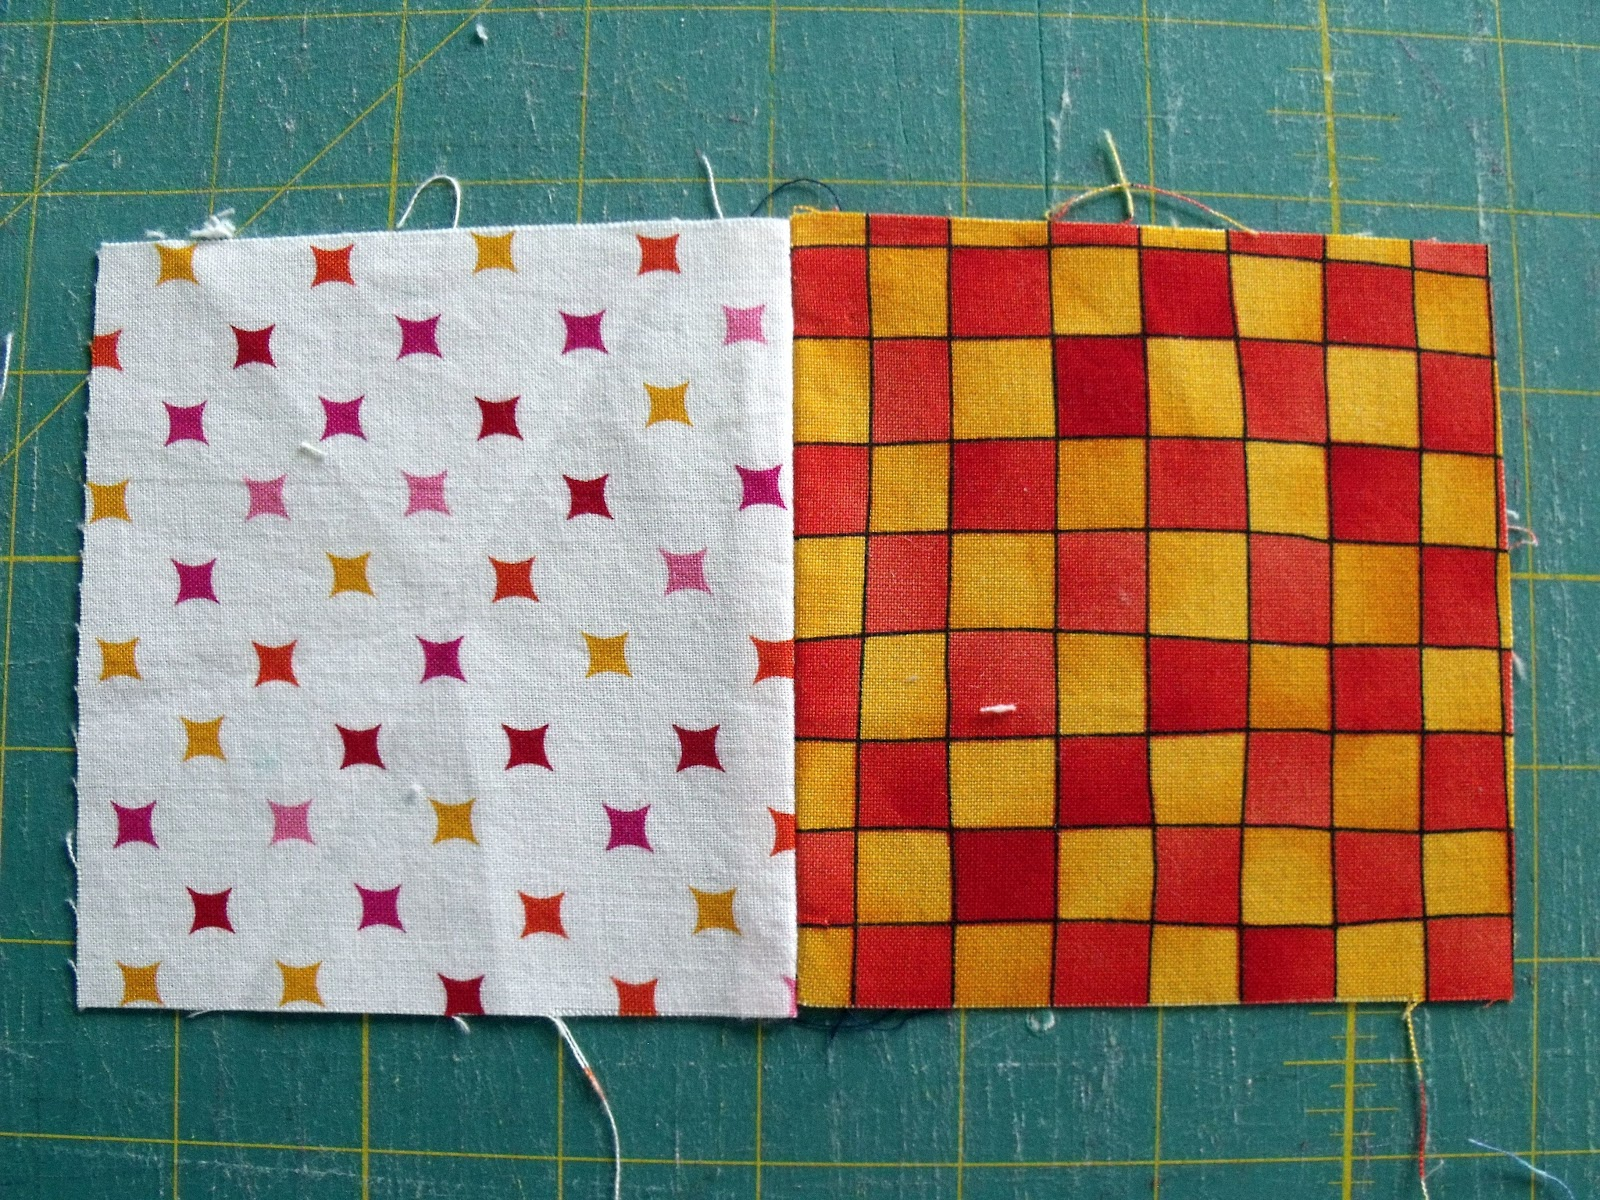 Quilting Along the Grain: Beginners Patchwork - How to Piece